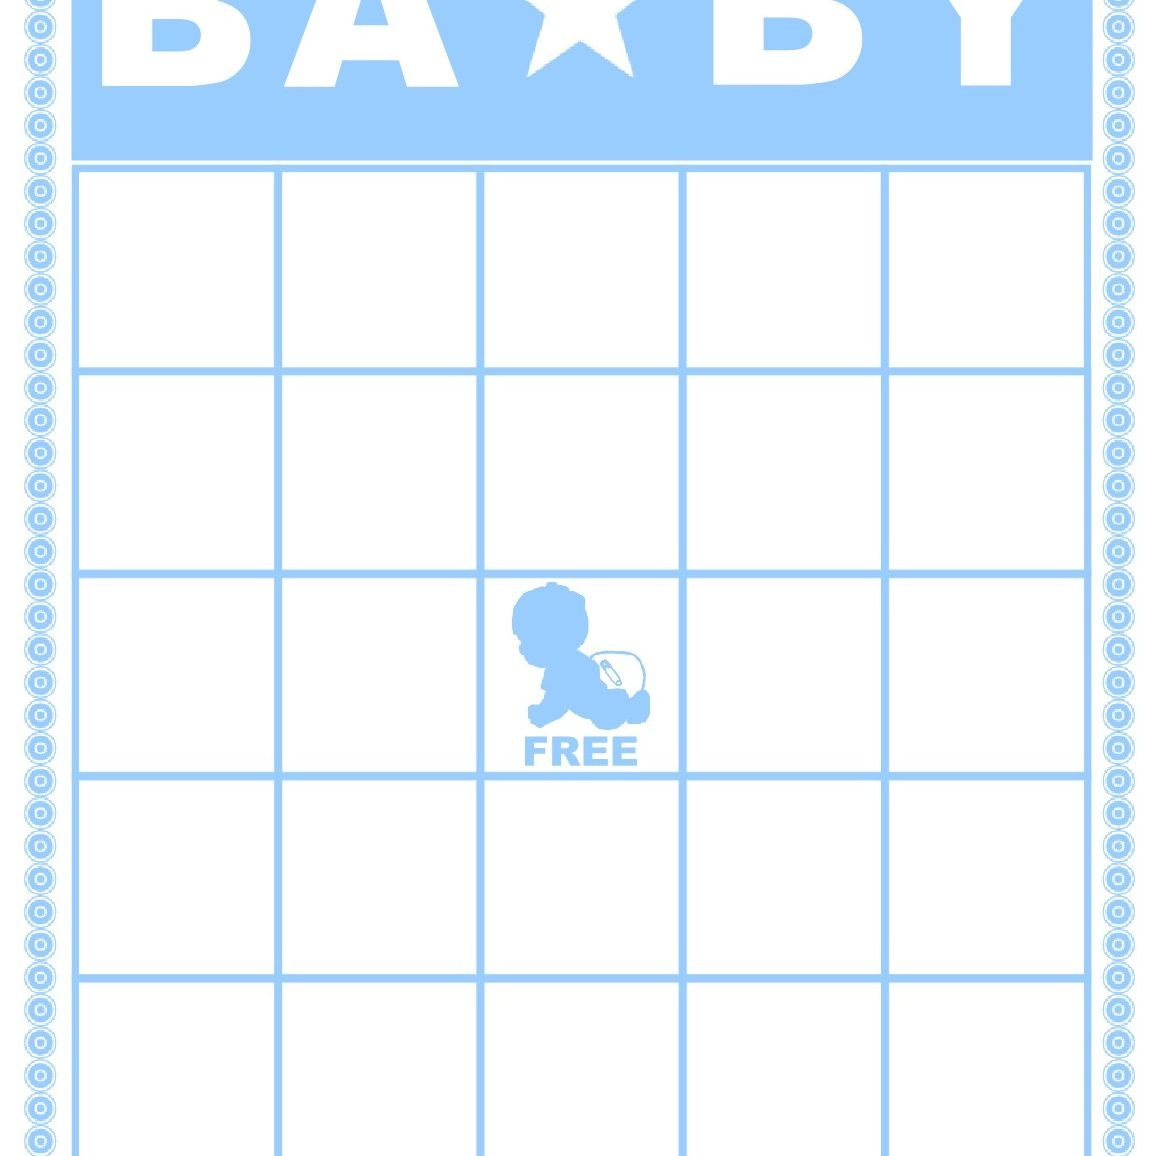 Free Baby Shower Bingo Cards Your Guests Will Love - Printable Baby Shower Bingo Games Free